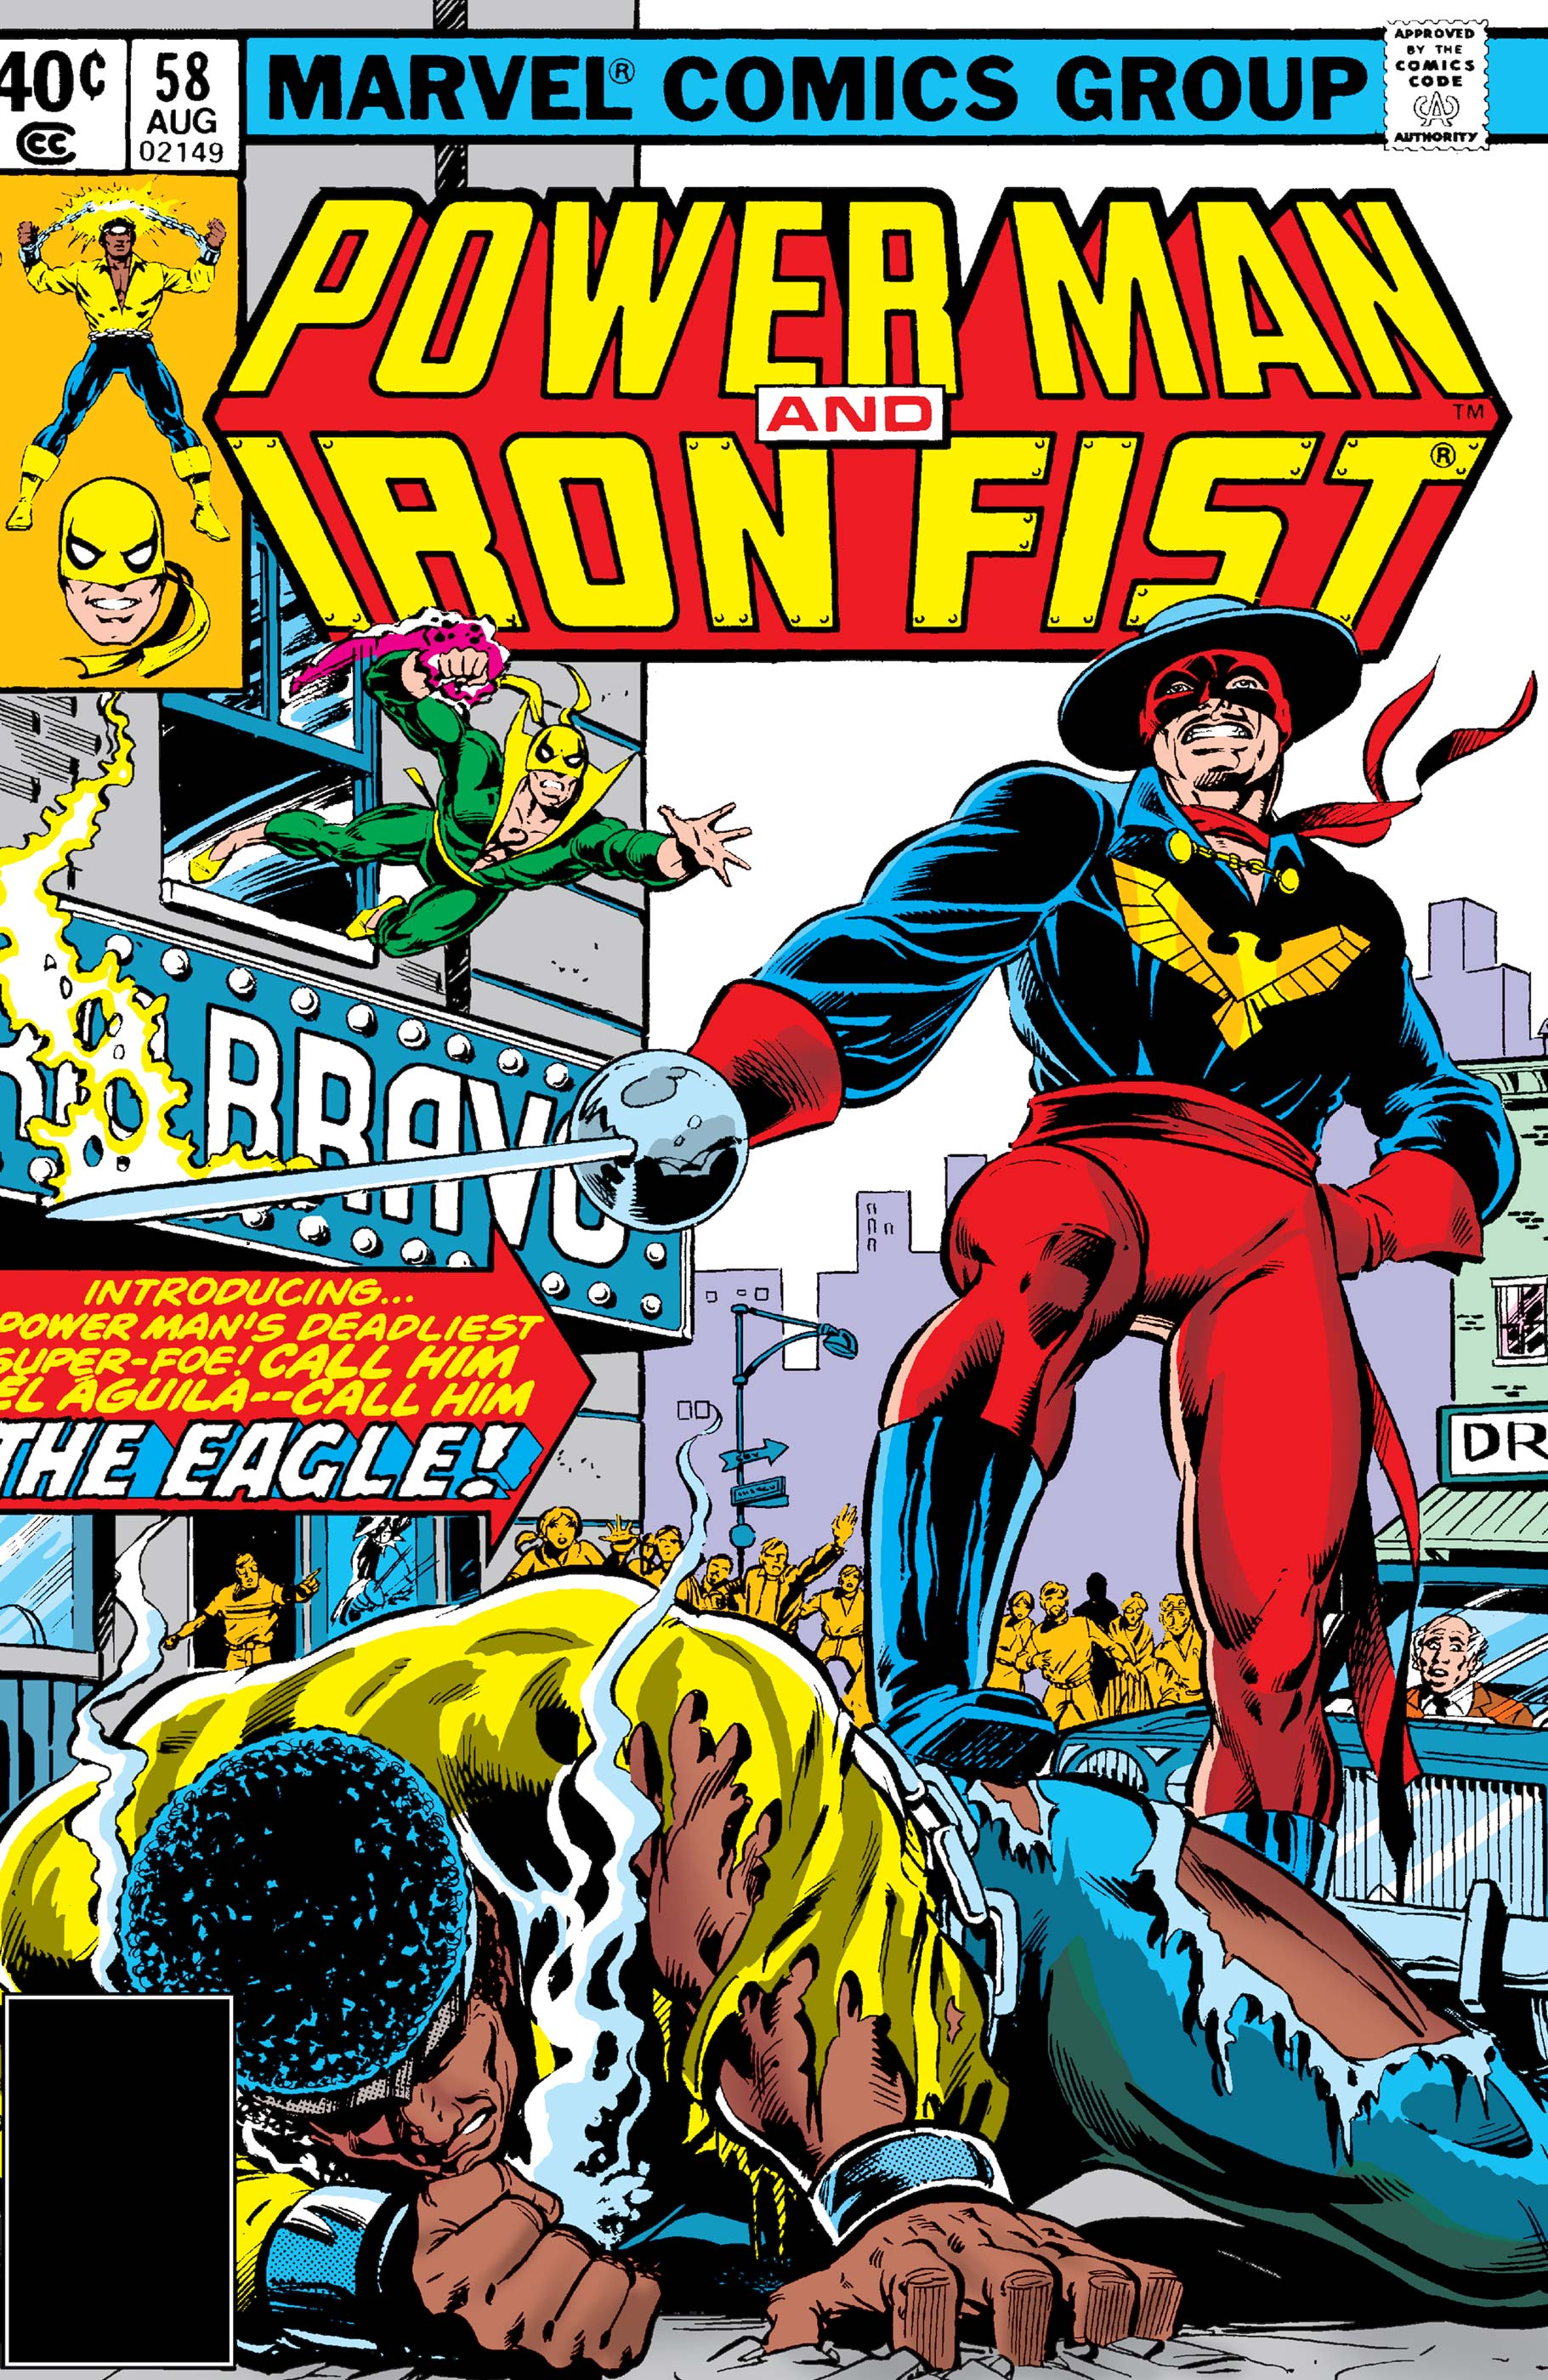 Power Man and Iron Fist (1978) #58